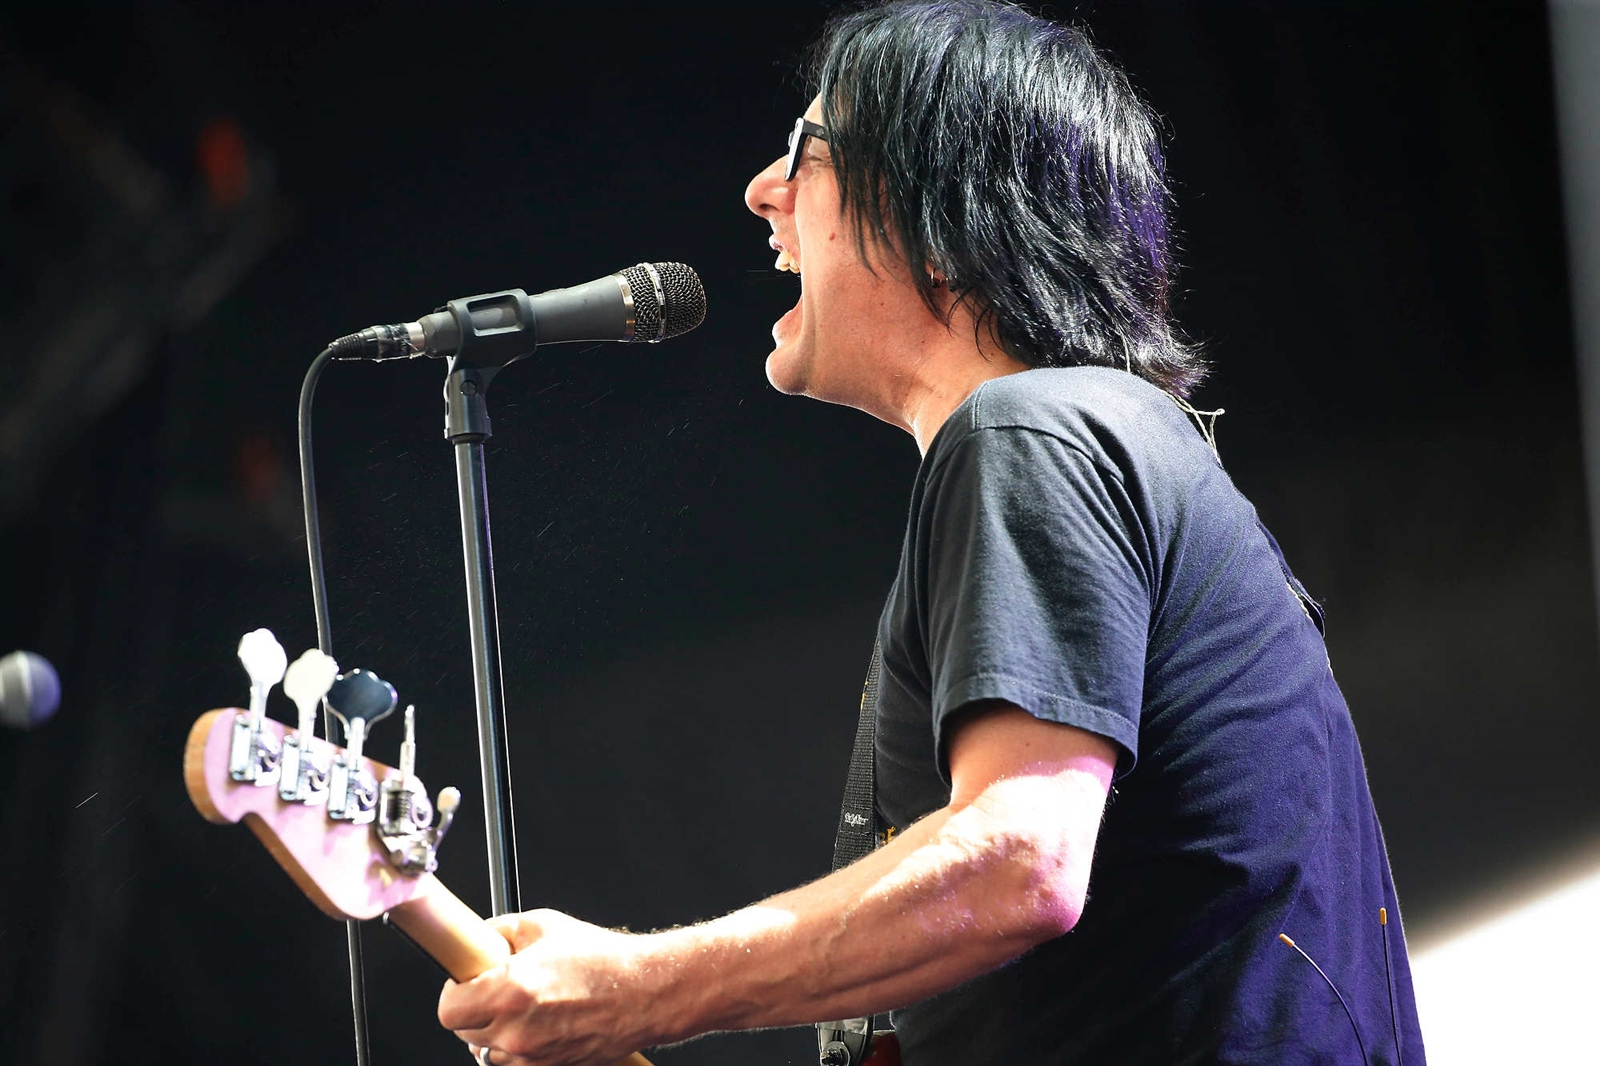 The Goo Goo Dolls' Robby Takac will spin at The Pink on Friday night. (Derek Gee/Buffalo News)